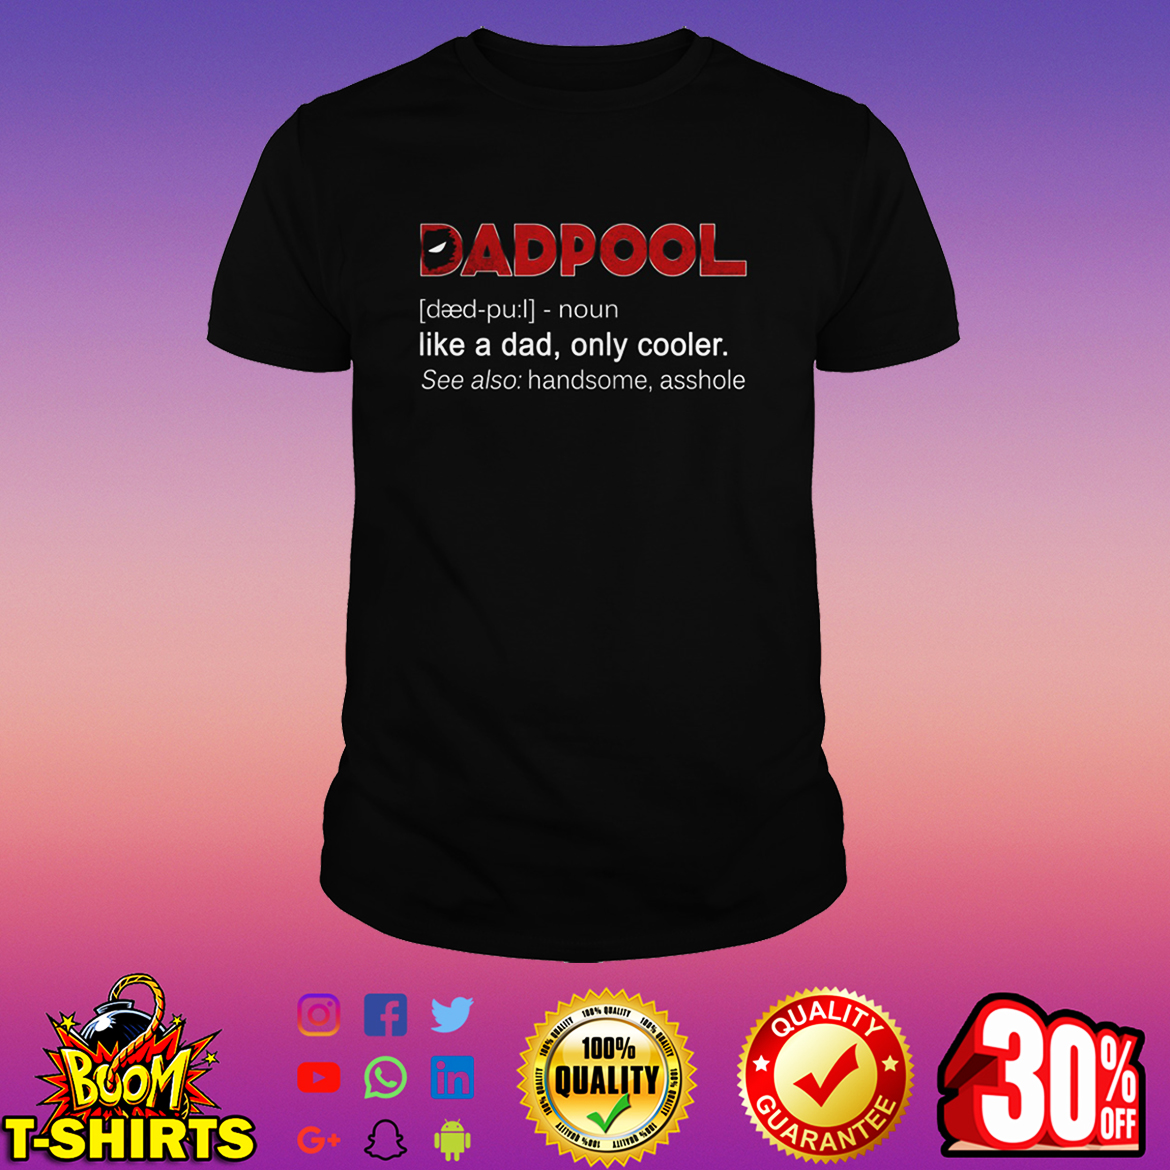 c9fab8d5 Top Selling) Dadpool like a dad only cooler shirt, v-neck and long ...